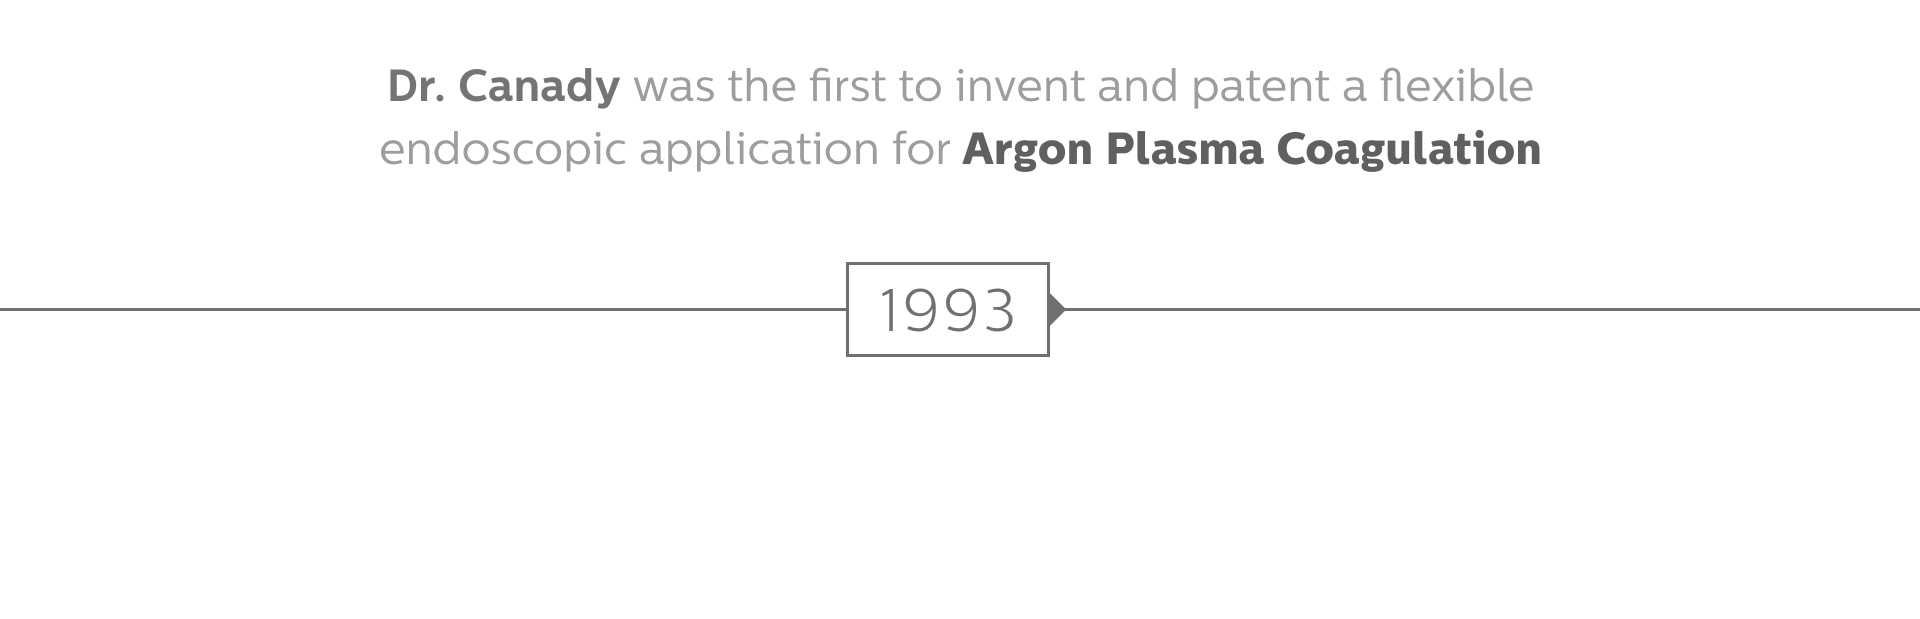 Dr. Jerome Canady was the first to invent a flexible endoscopic application for Argon Plasma Coagulation.